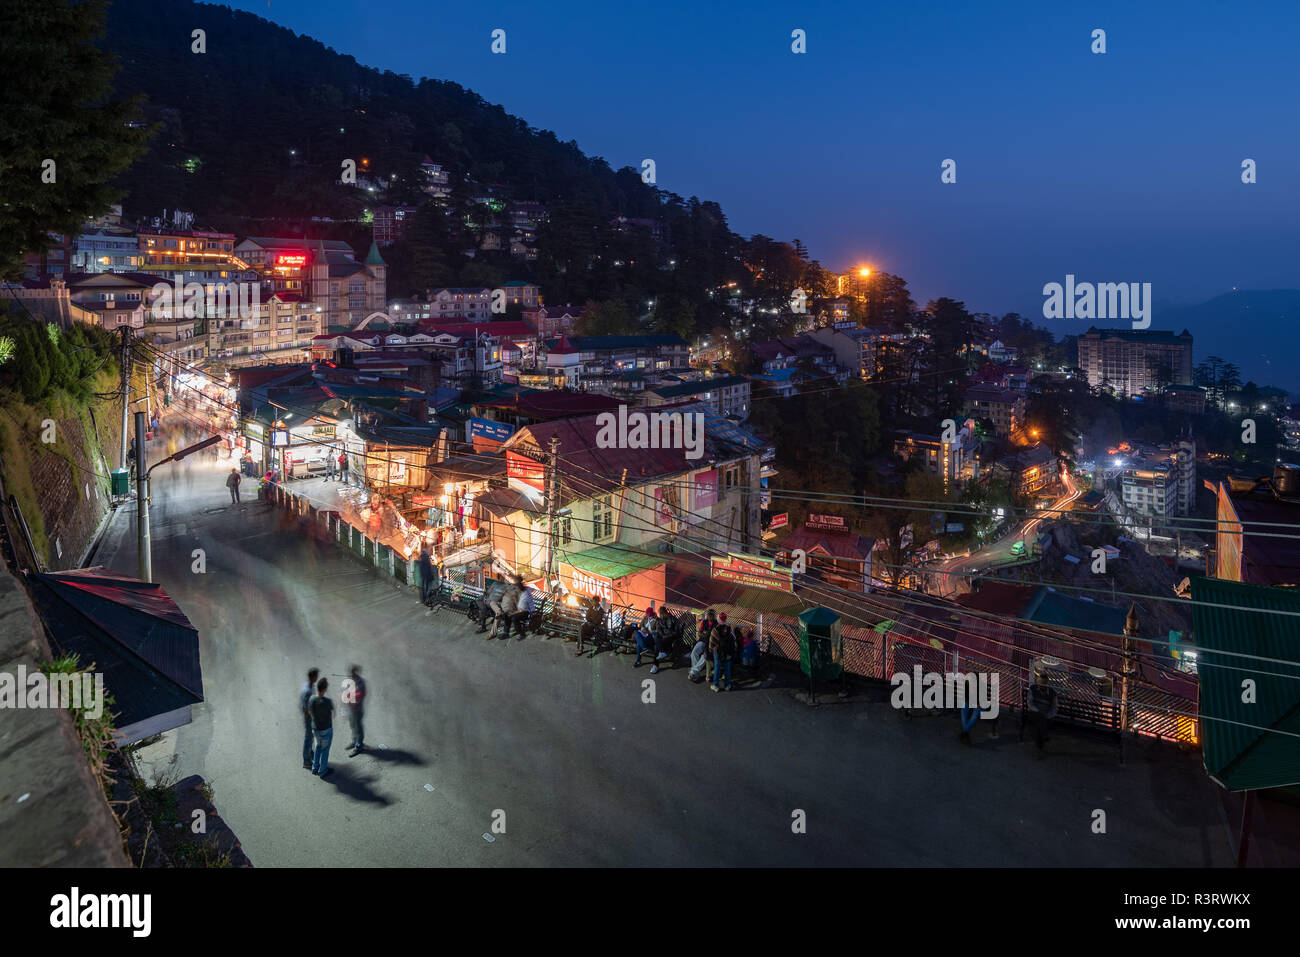 A group of three people stopped to have a chat on the busy Mall Road in Shimla at night, Himachal Pradesh, India - Stock Image